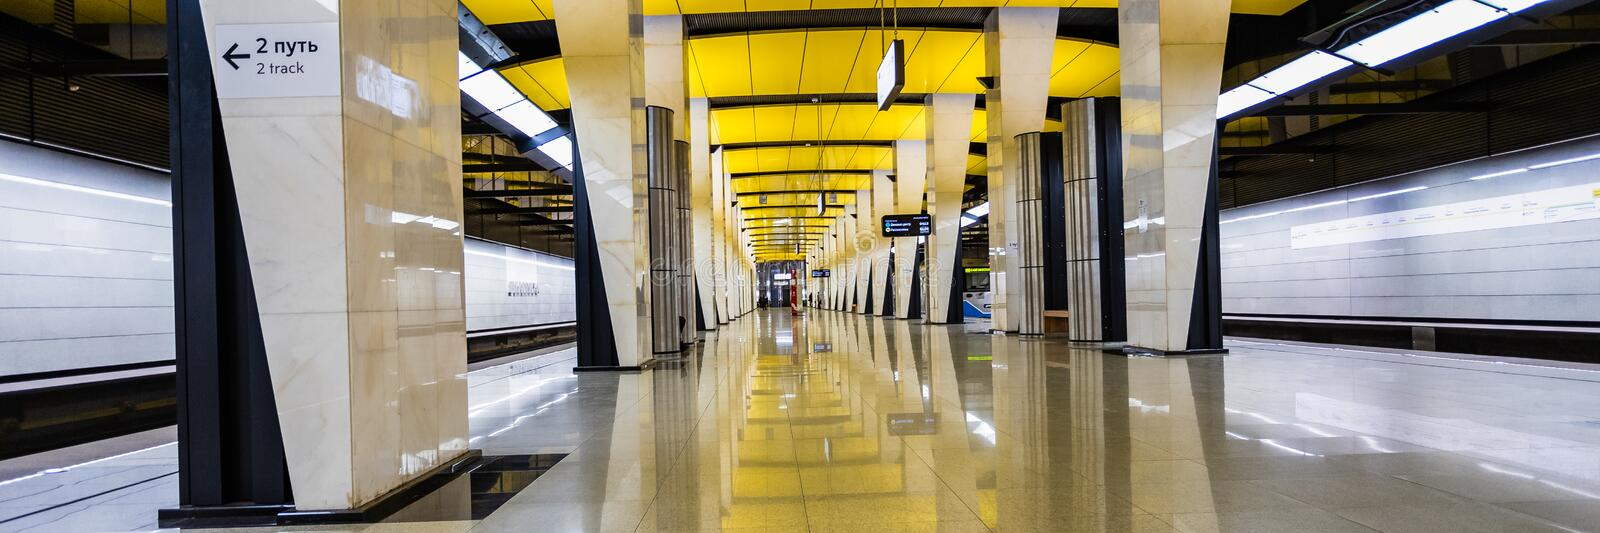 Moscow, Russia may 26, 2019, the new subway station Shelepiha Magnificent modern lobby is decorated in bright colors: yellow, stock photography